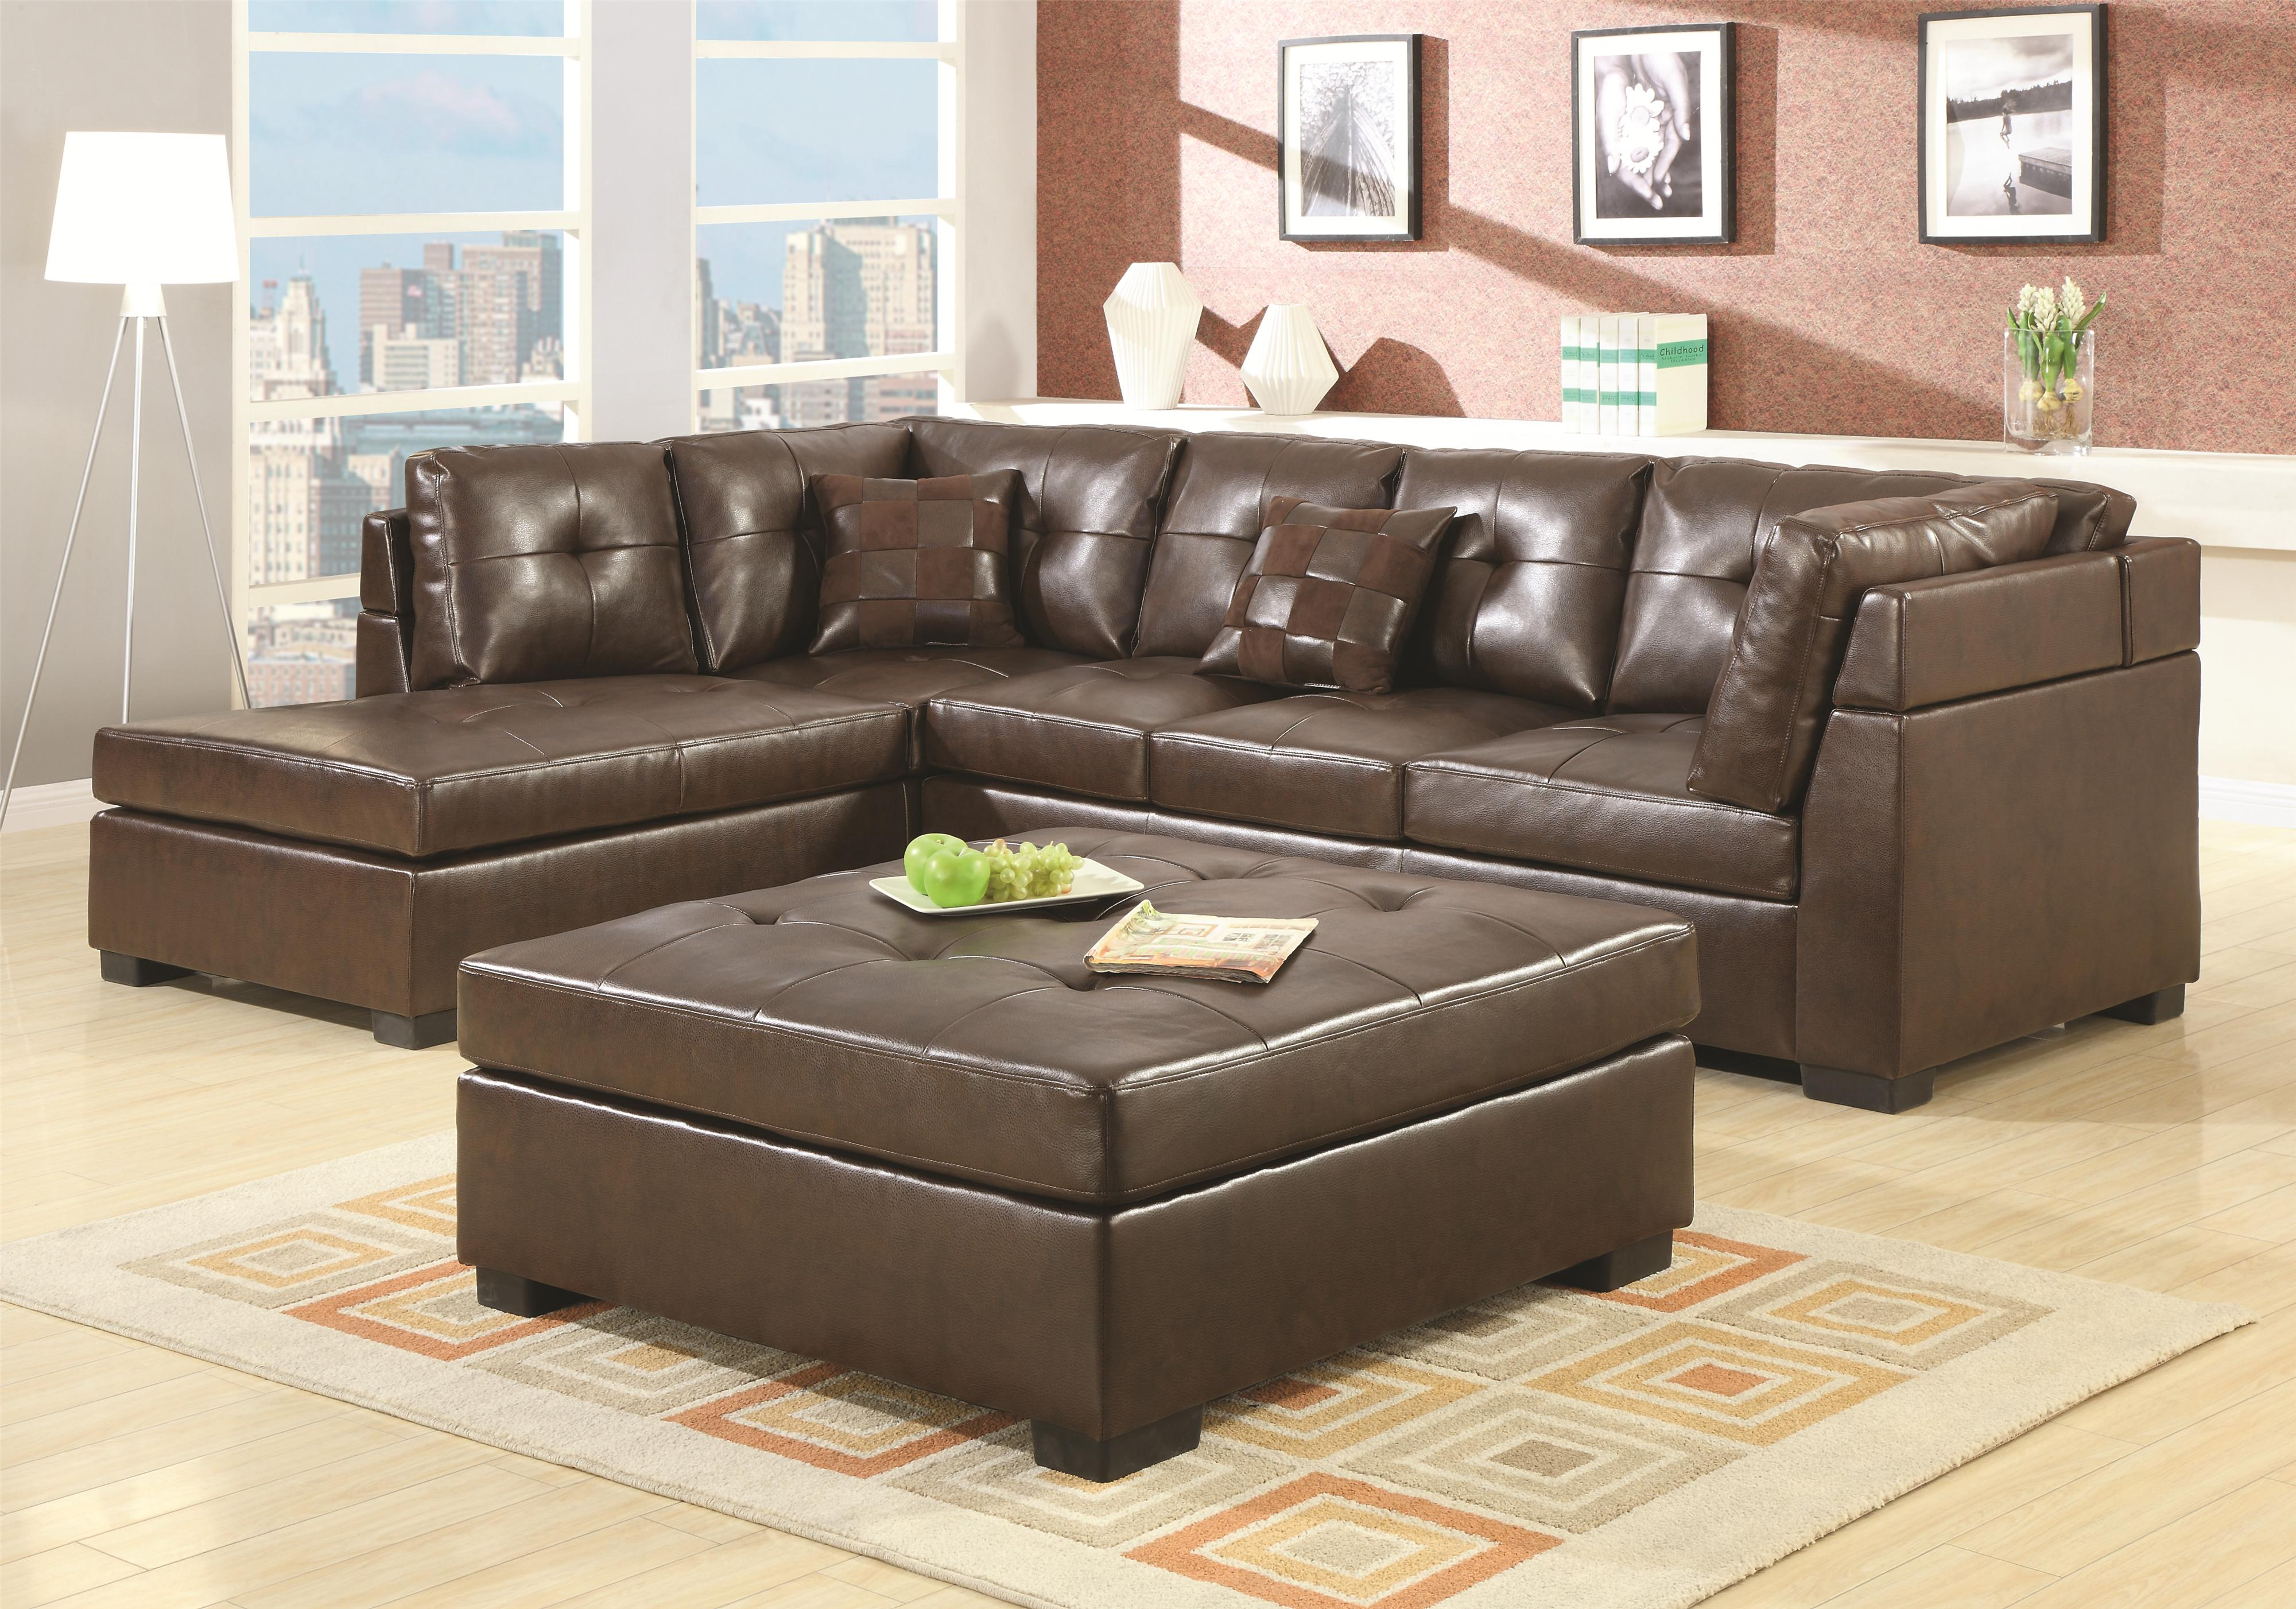 Coaster Darie 500686 Leather Sectional Sofa With Left Side Chaise Del Sol Furniture Sofa